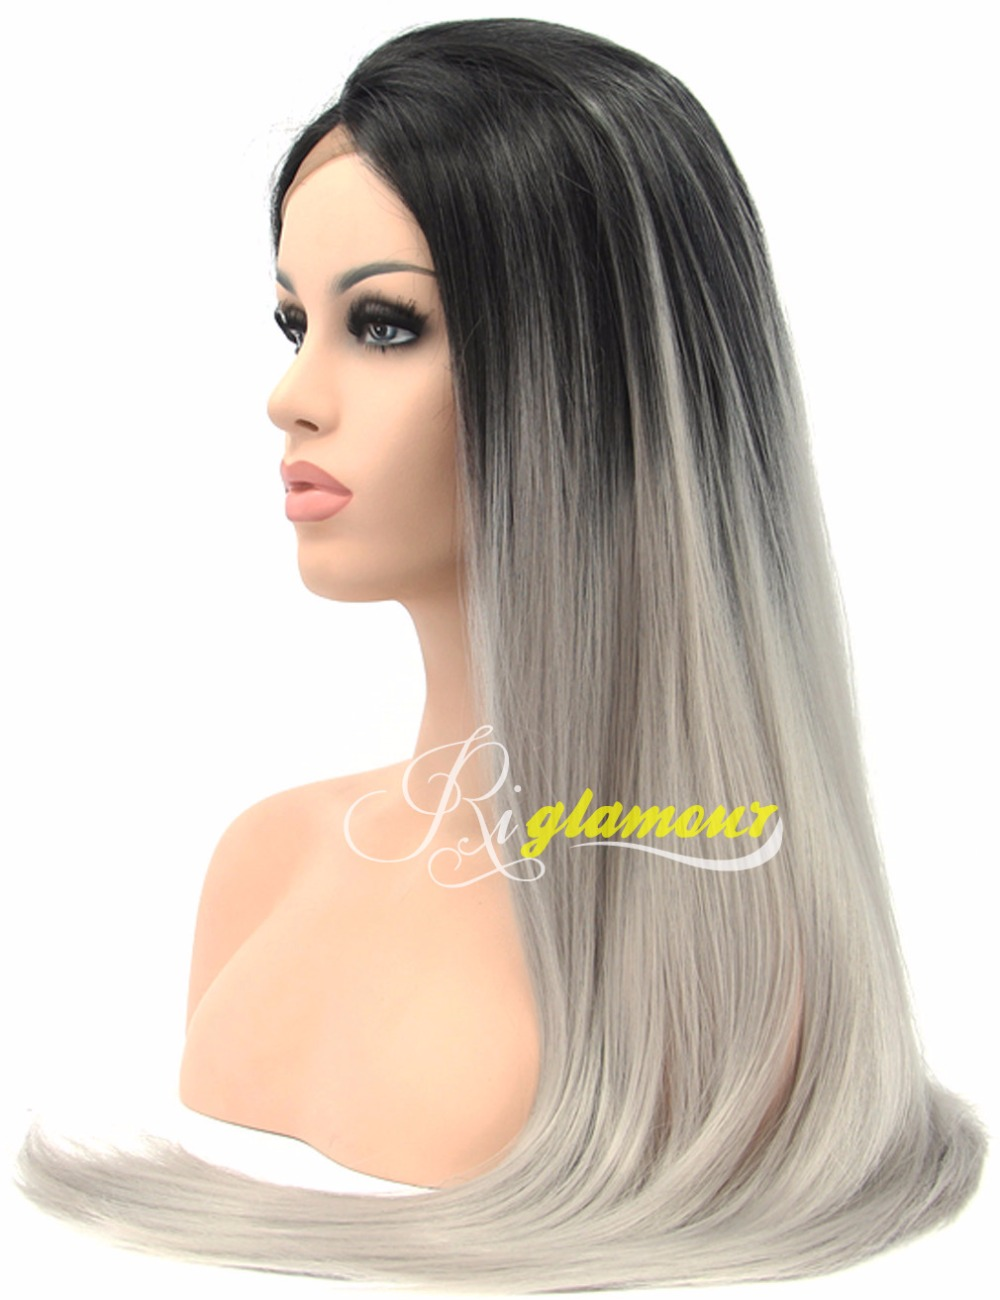 Ombre Hair Wig with Grey and Black 2 Tone Synthetic Lace Front Wigs for Women Long Silky Straight Wig Heat Resistant<br><br>Aliexpress